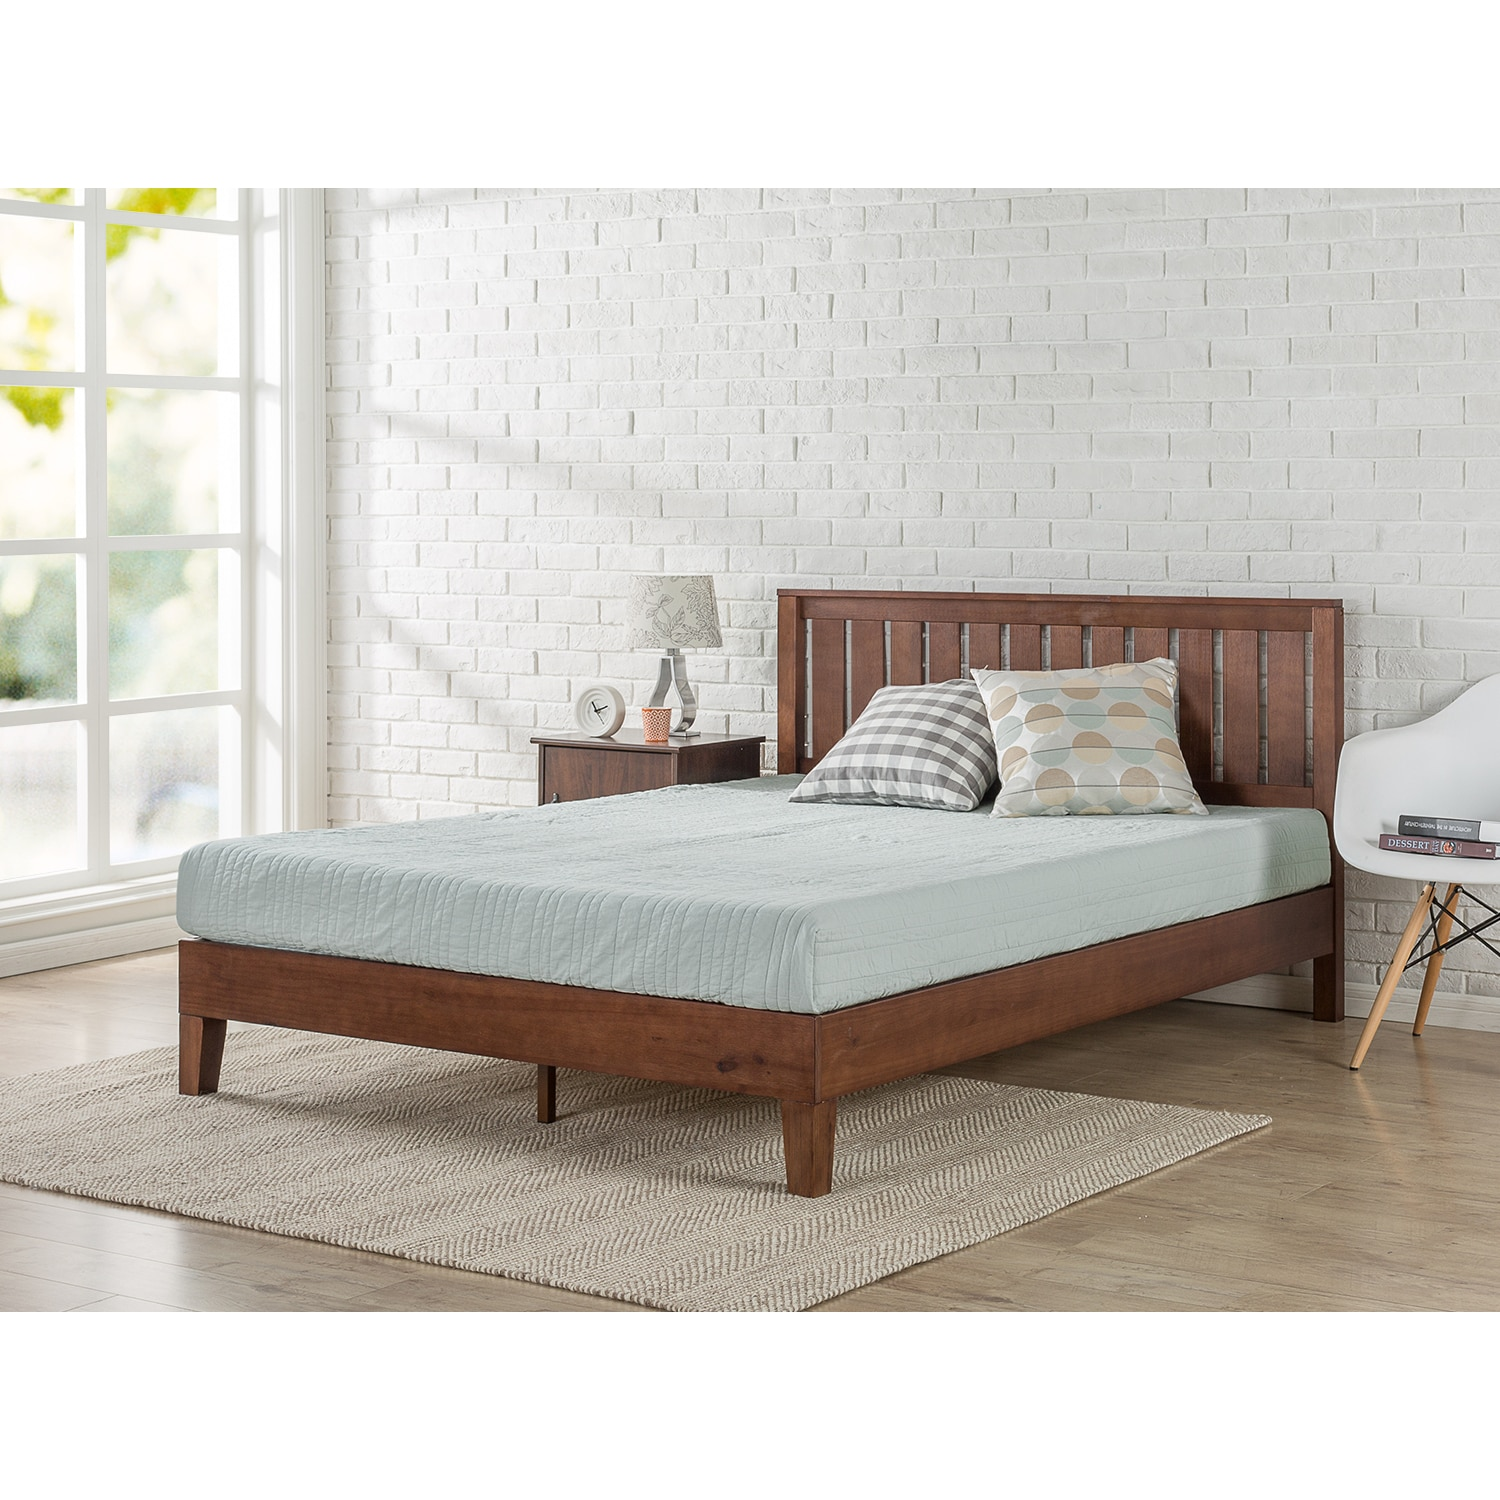 Cheap Wooden Bed Frames Buy Wood Beds Online At Overstock Our Best Bedroom Furniture Deals